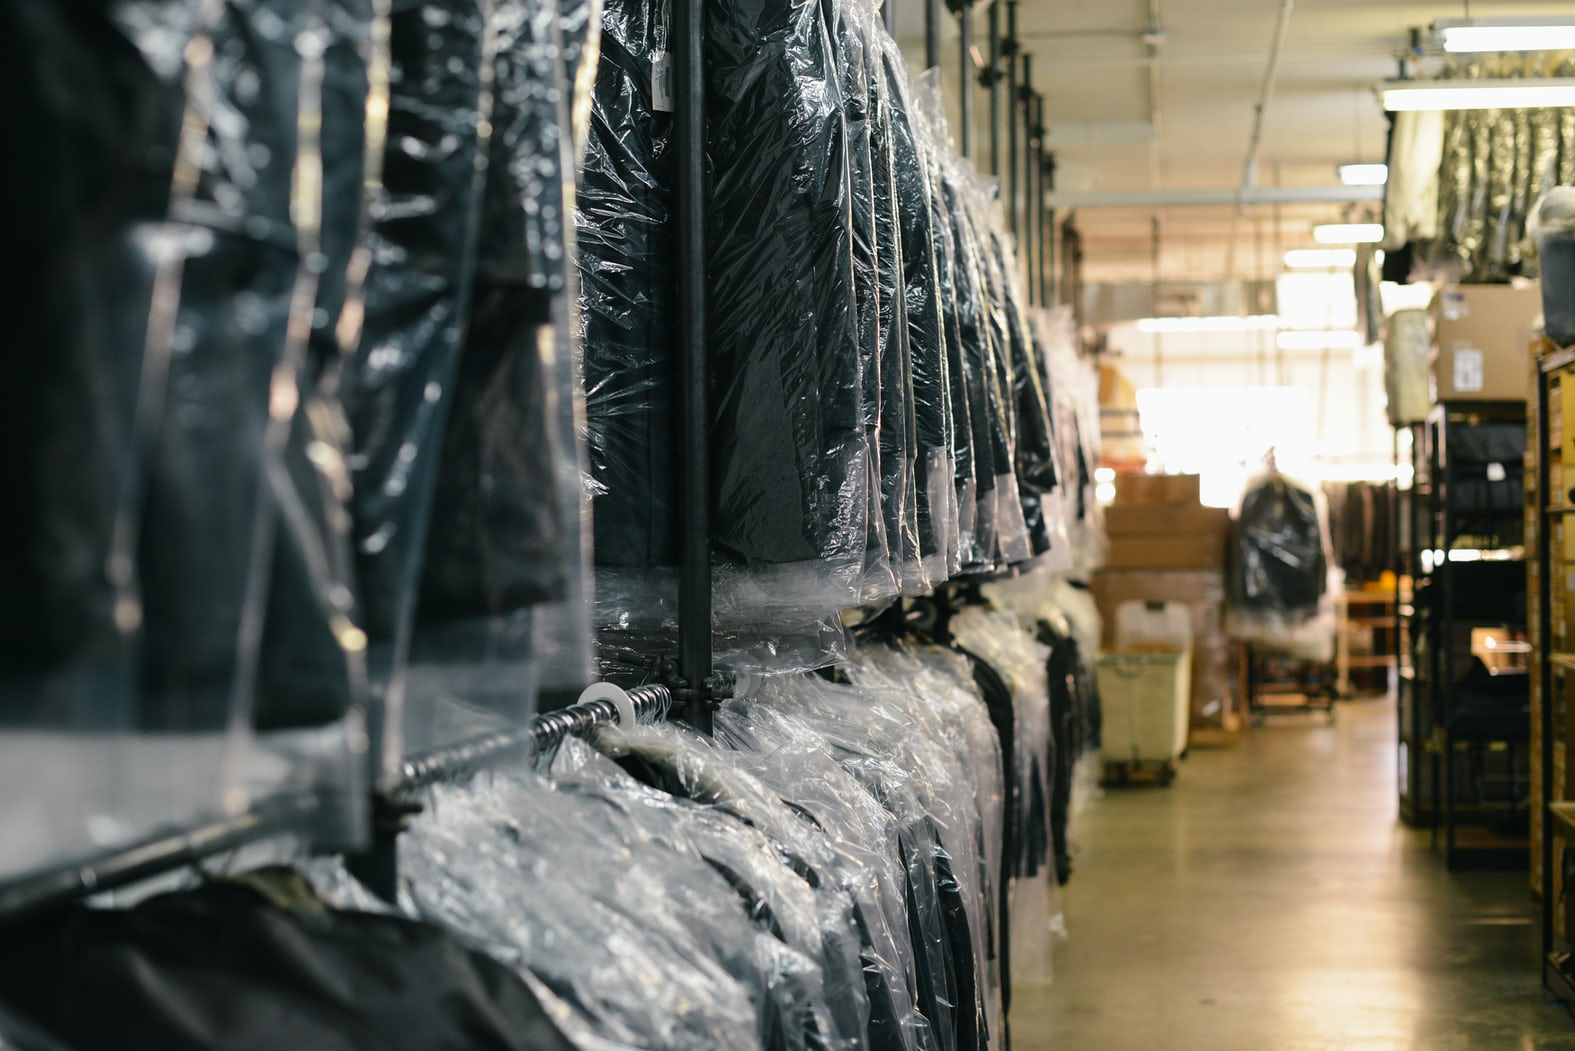 zoots dry cleaning essay Employees at zoots dry cleaning say they're left without pay after the company suddenly closed its doors.